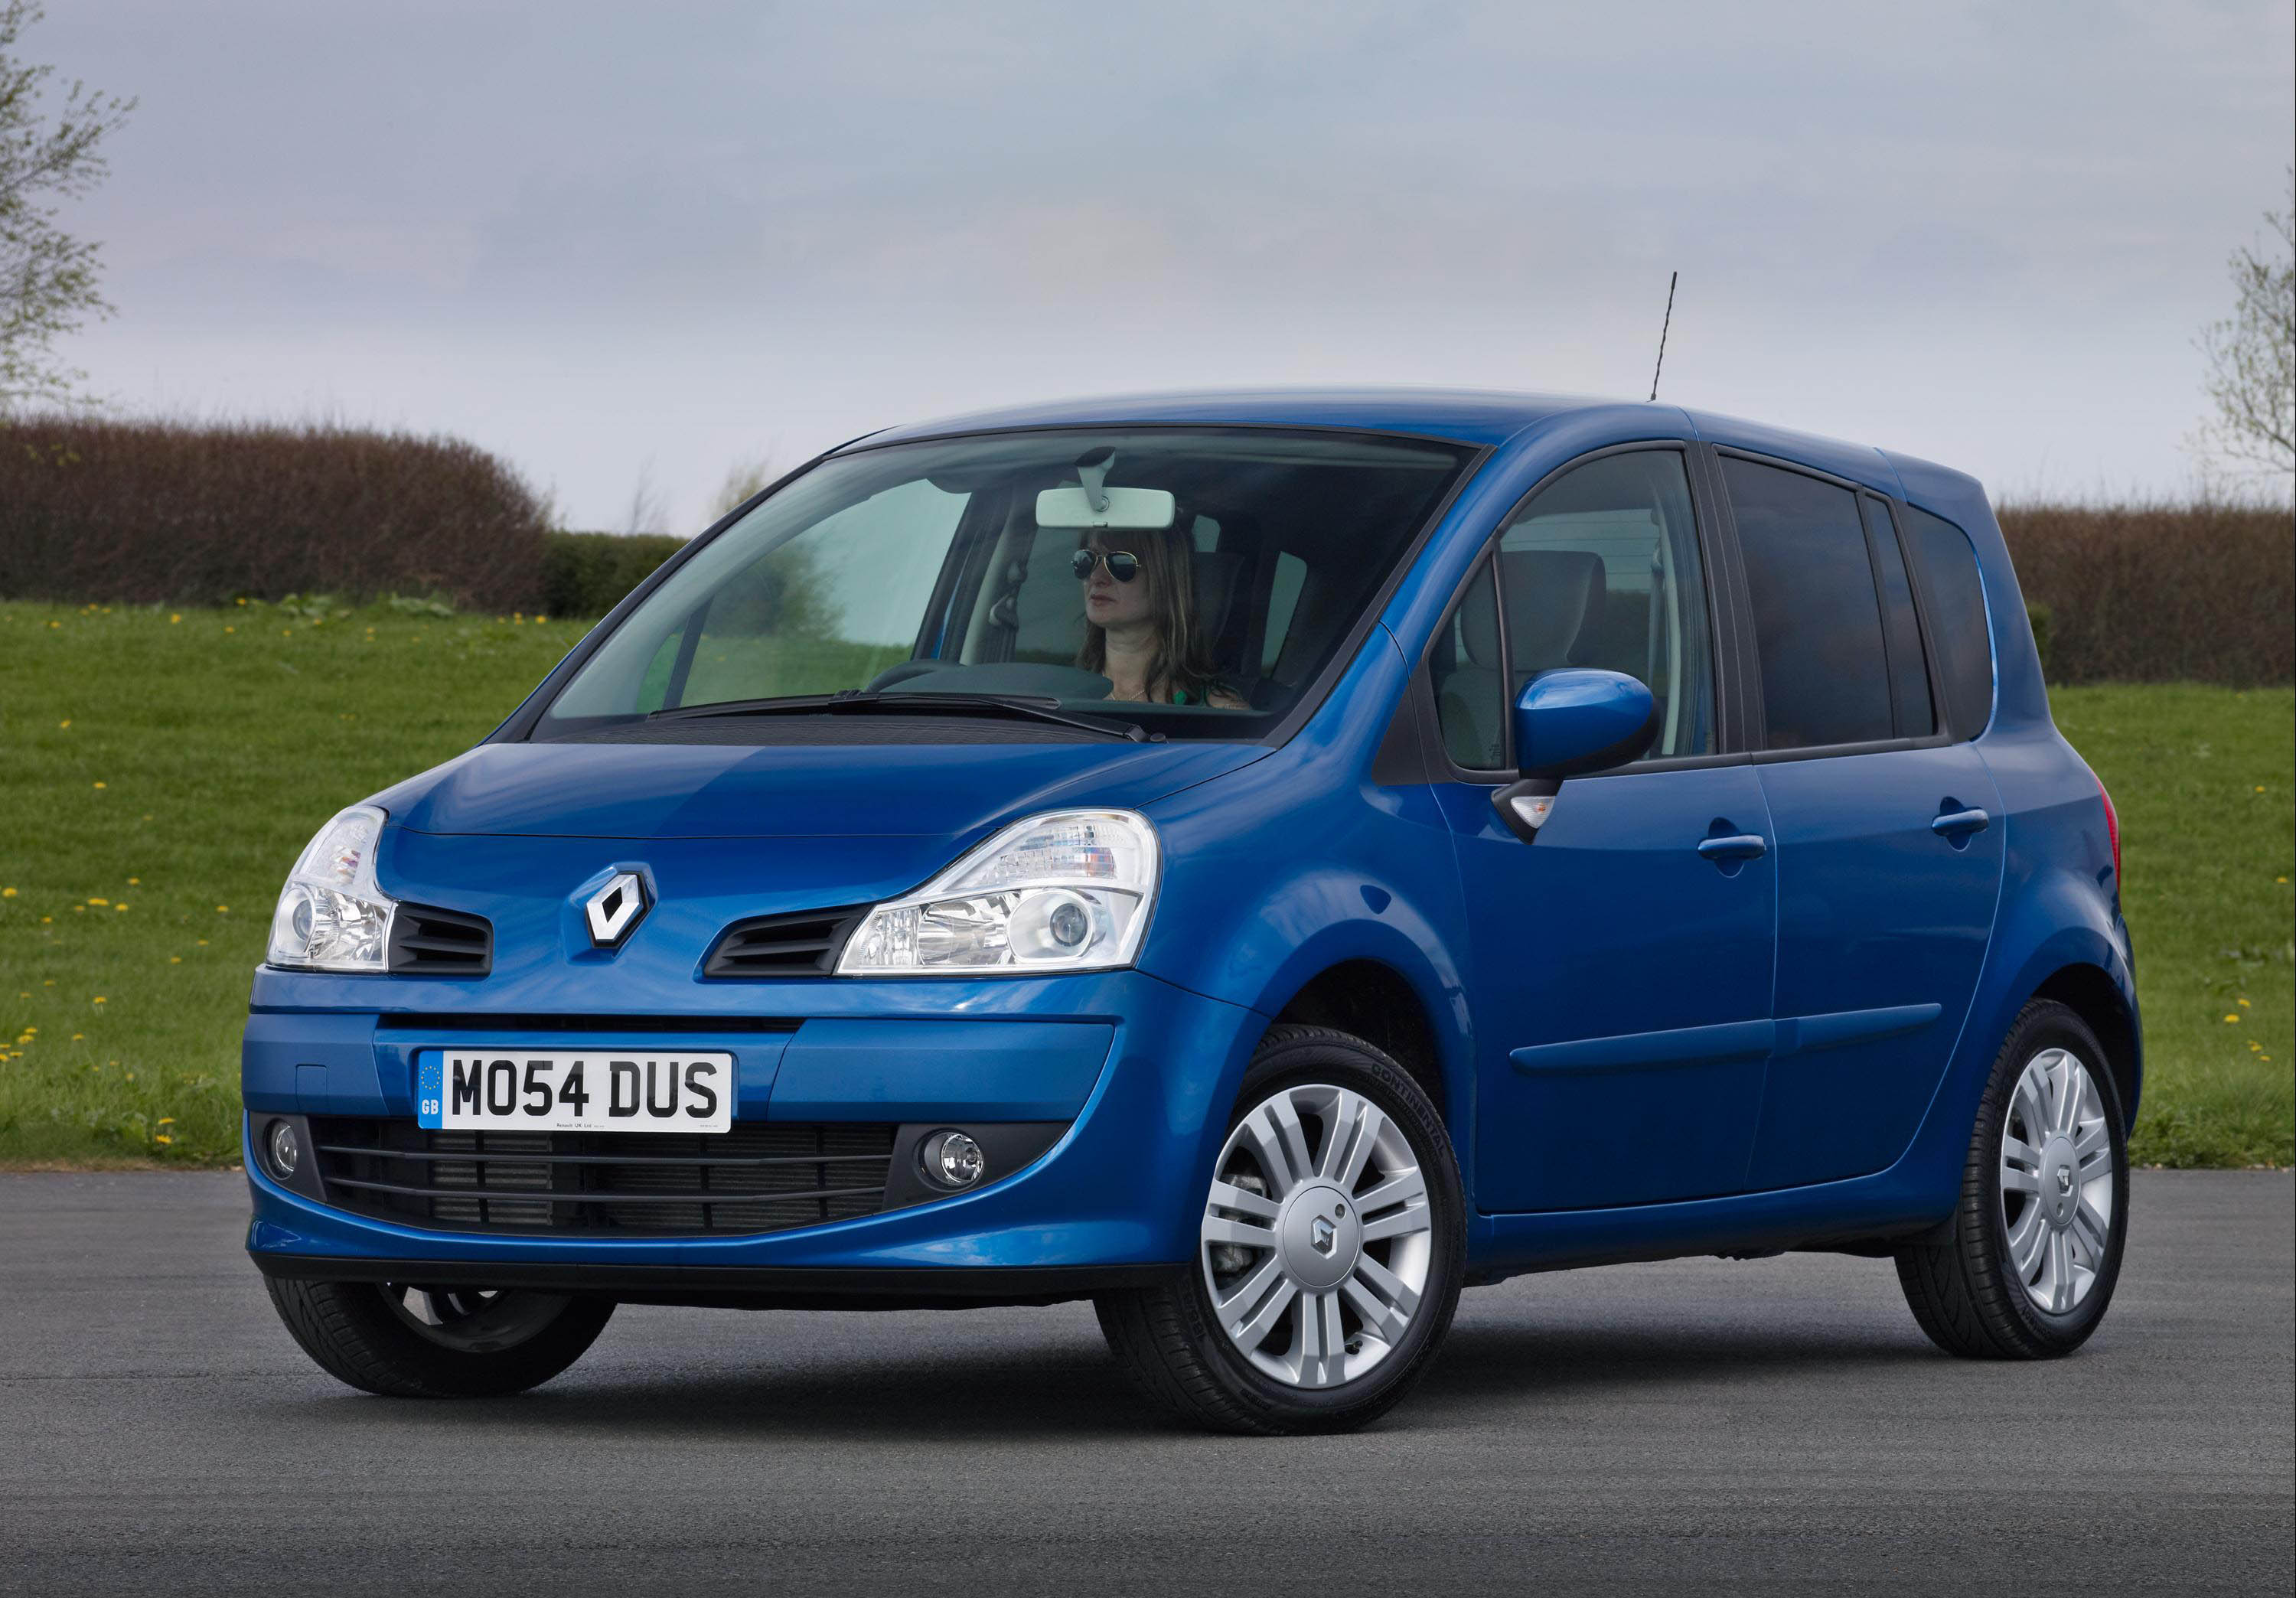 renault modus is named best small mpv in green car awards. Black Bedroom Furniture Sets. Home Design Ideas